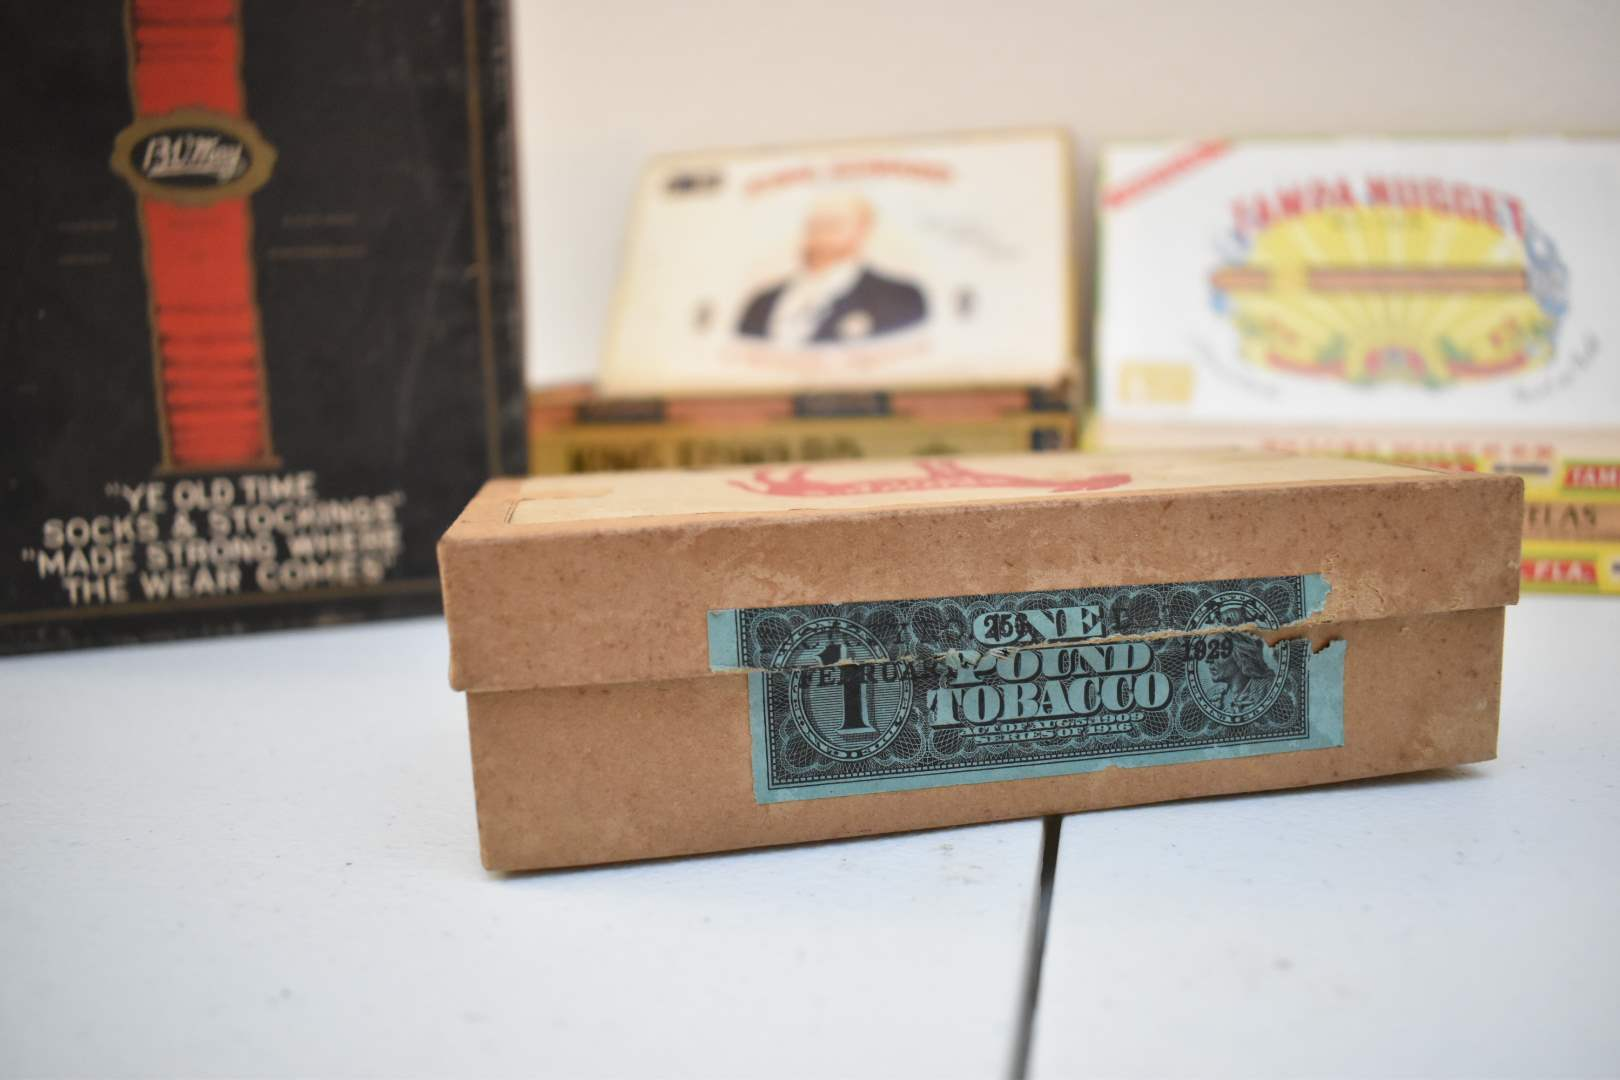 Antique Empty Cigar Boxes with Visible Tobacco Stamps from 1929